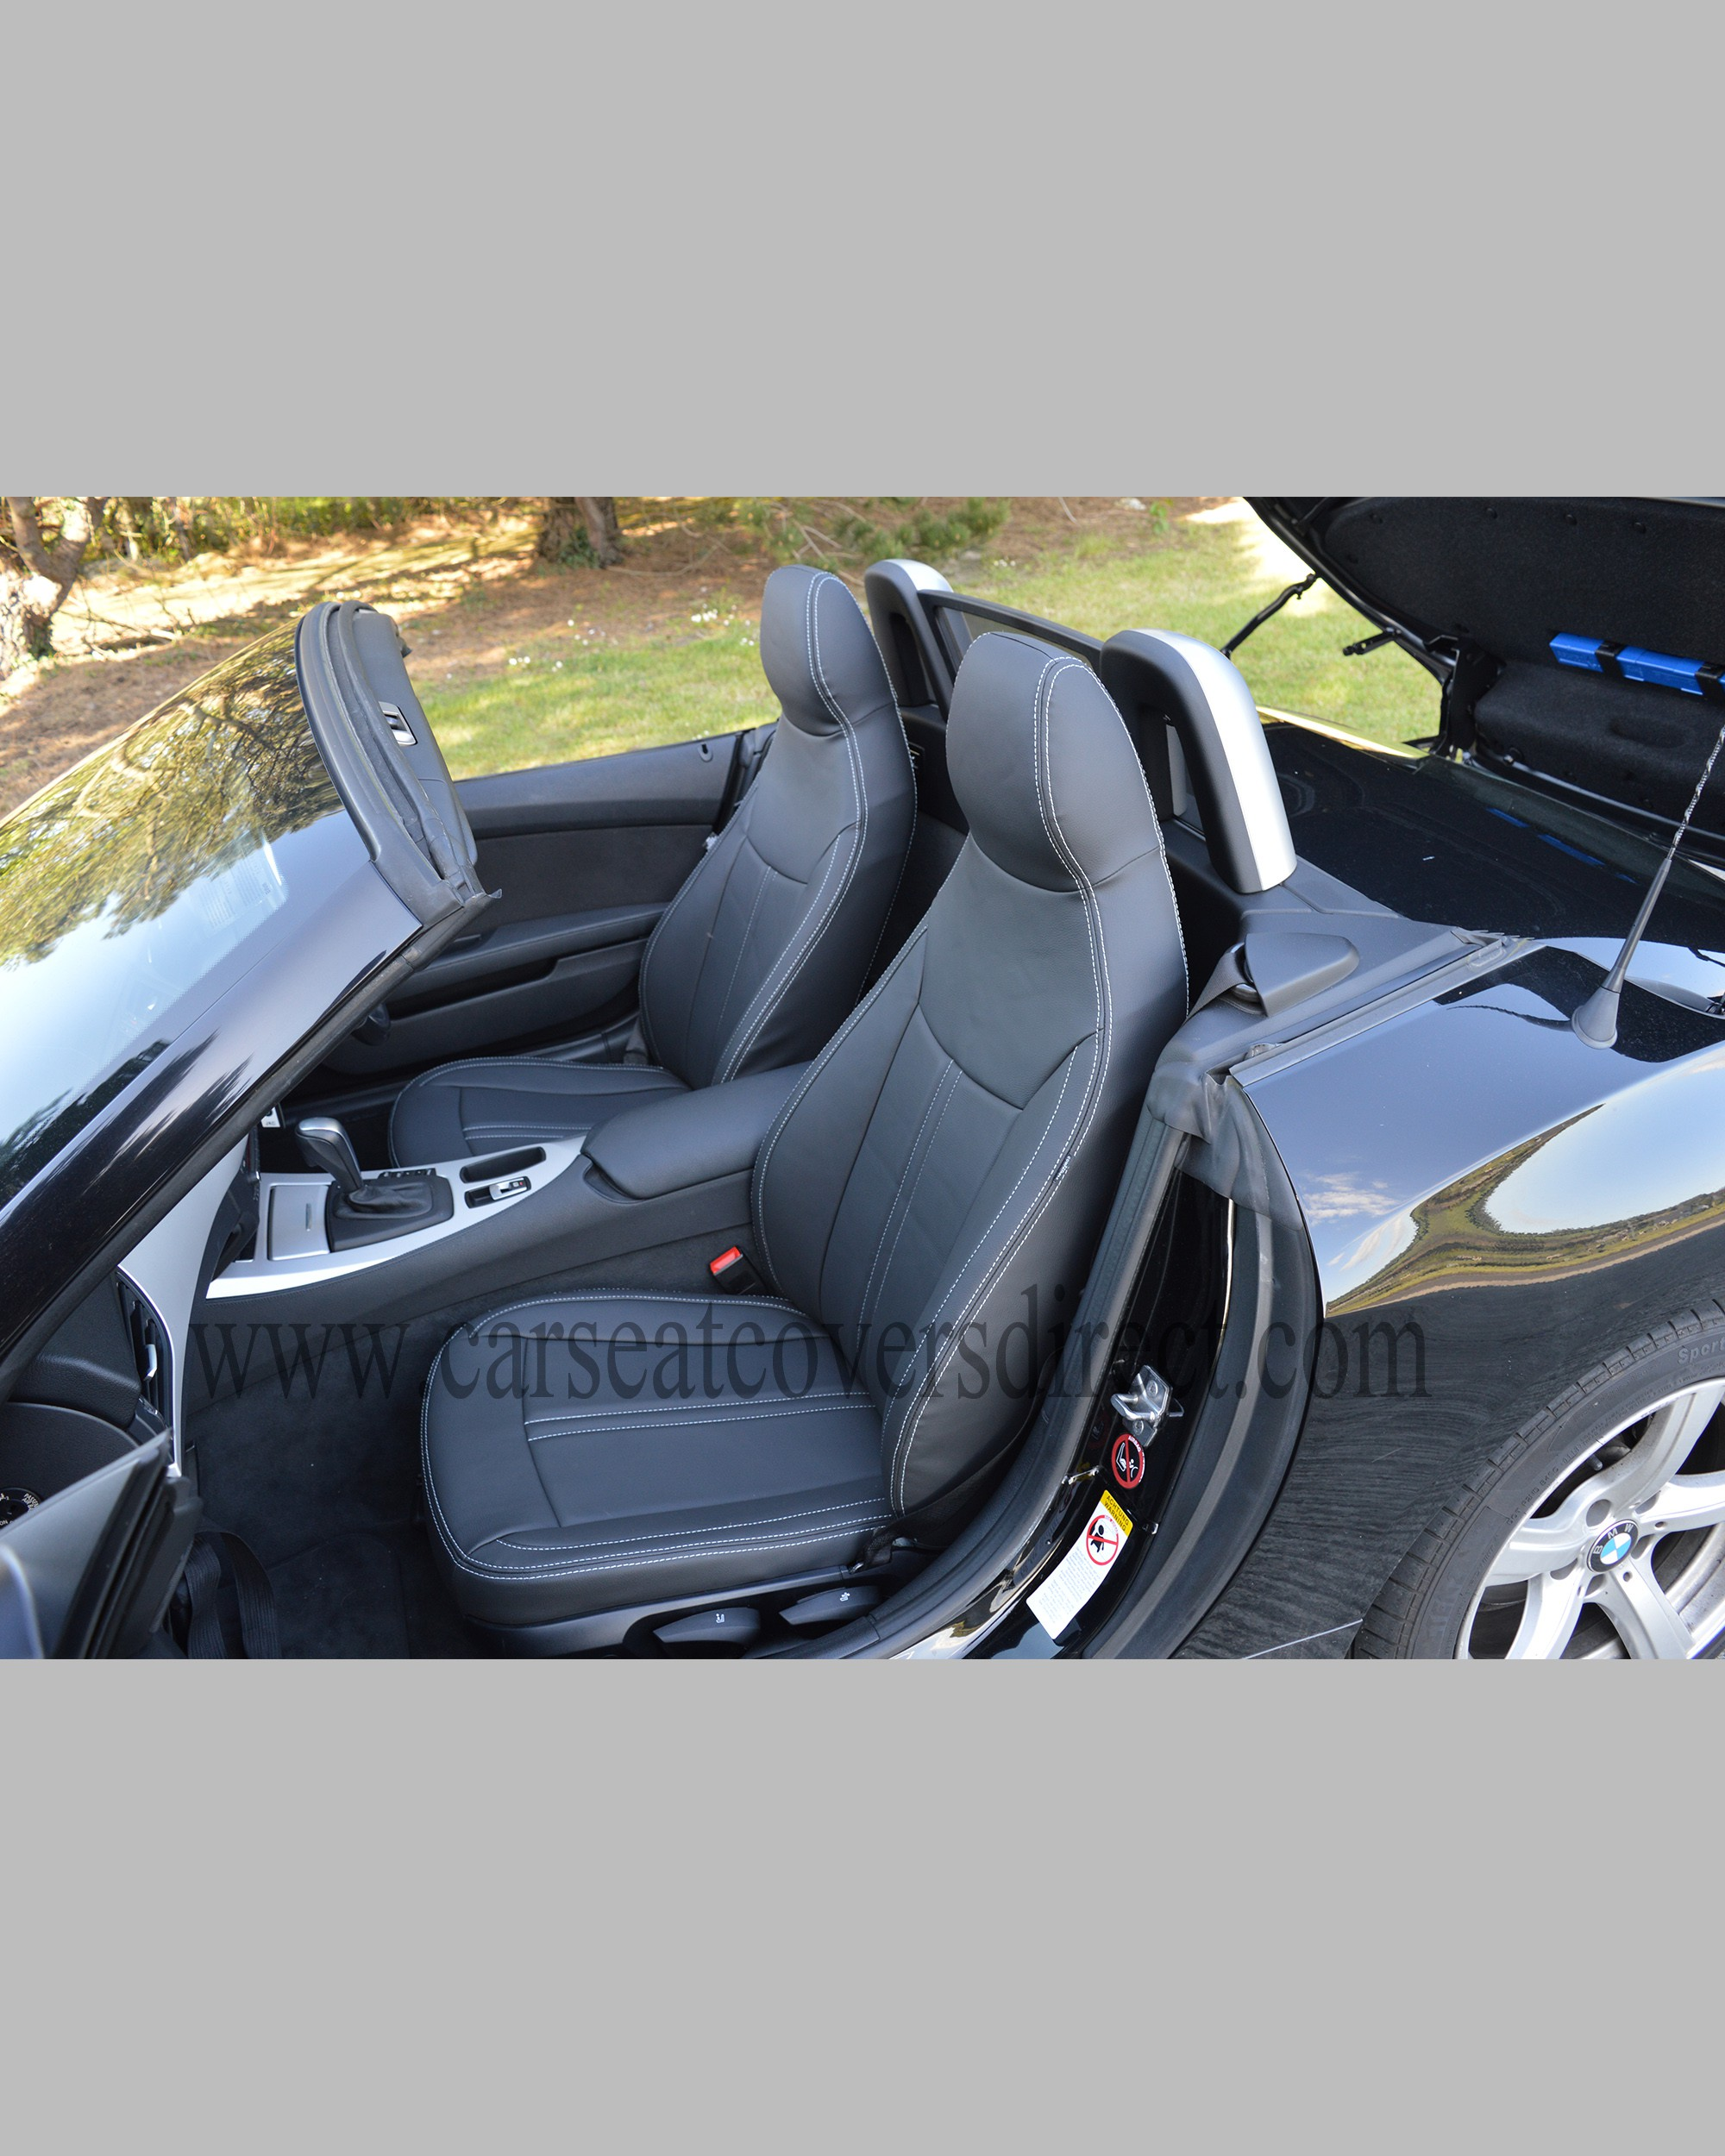 bmw z4 seat covers bing images. Black Bedroom Furniture Sets. Home Design Ideas